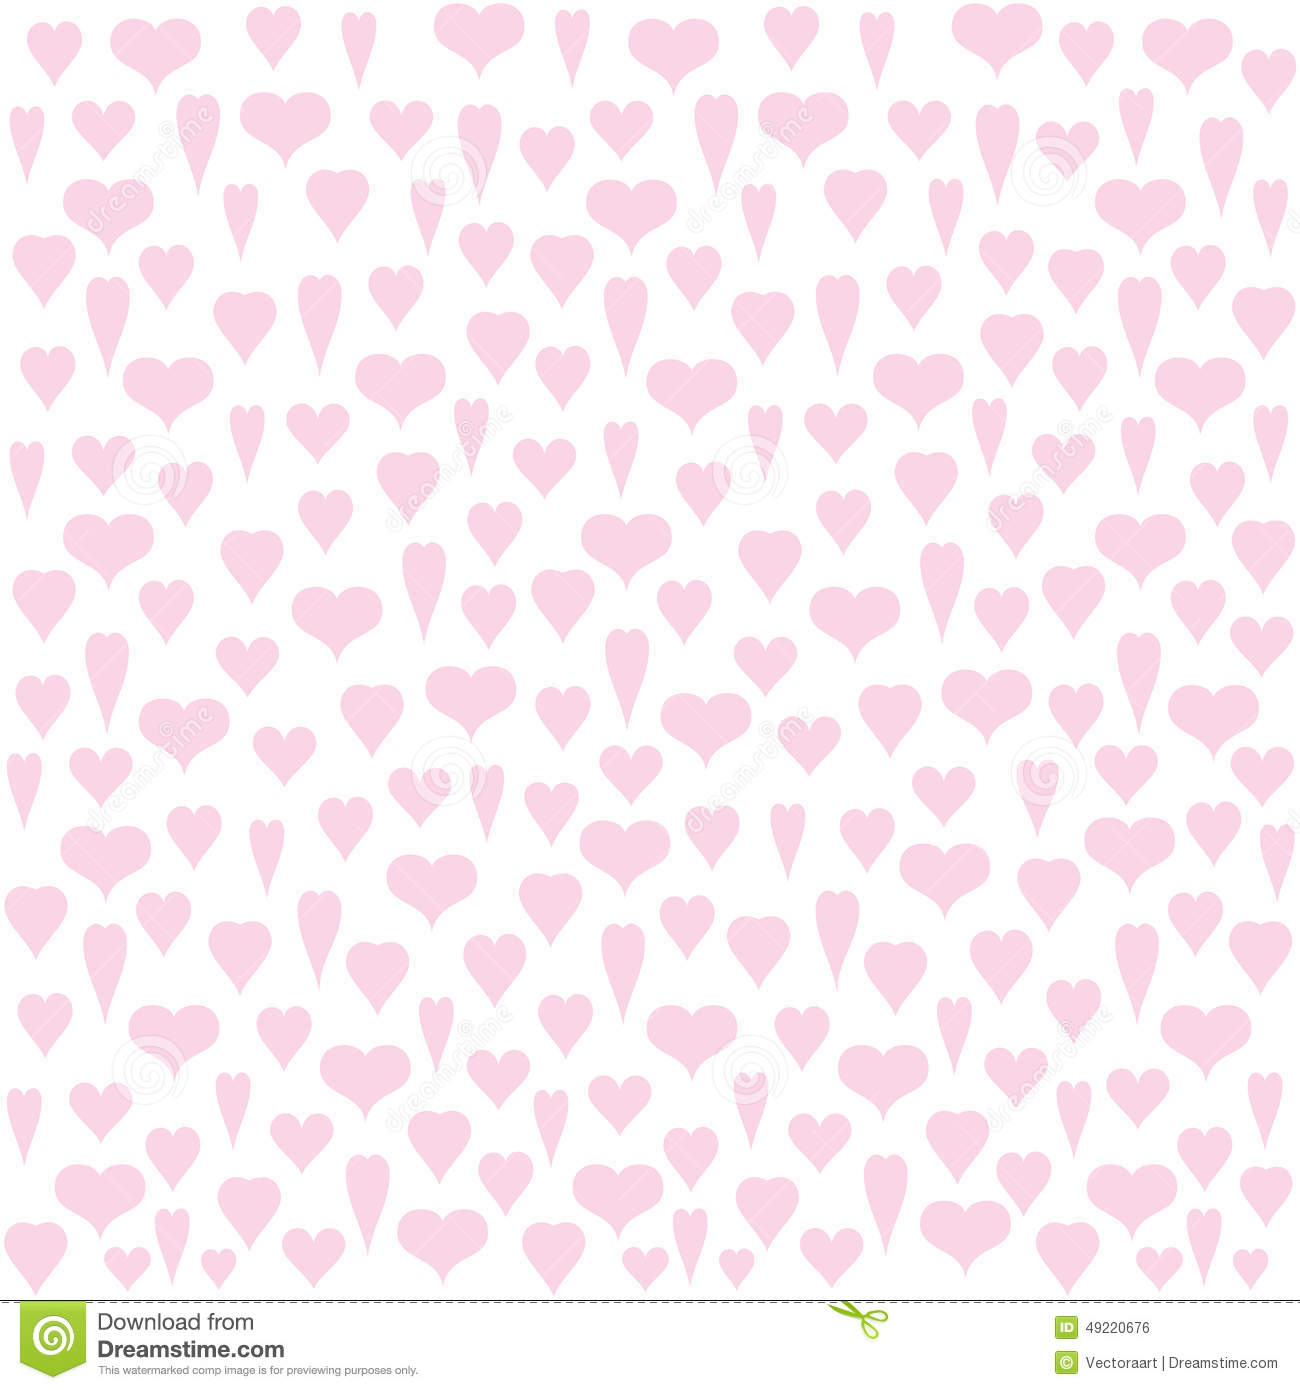 Valentine Day Gift Wrapping Paper Design Stock Vector Illustration